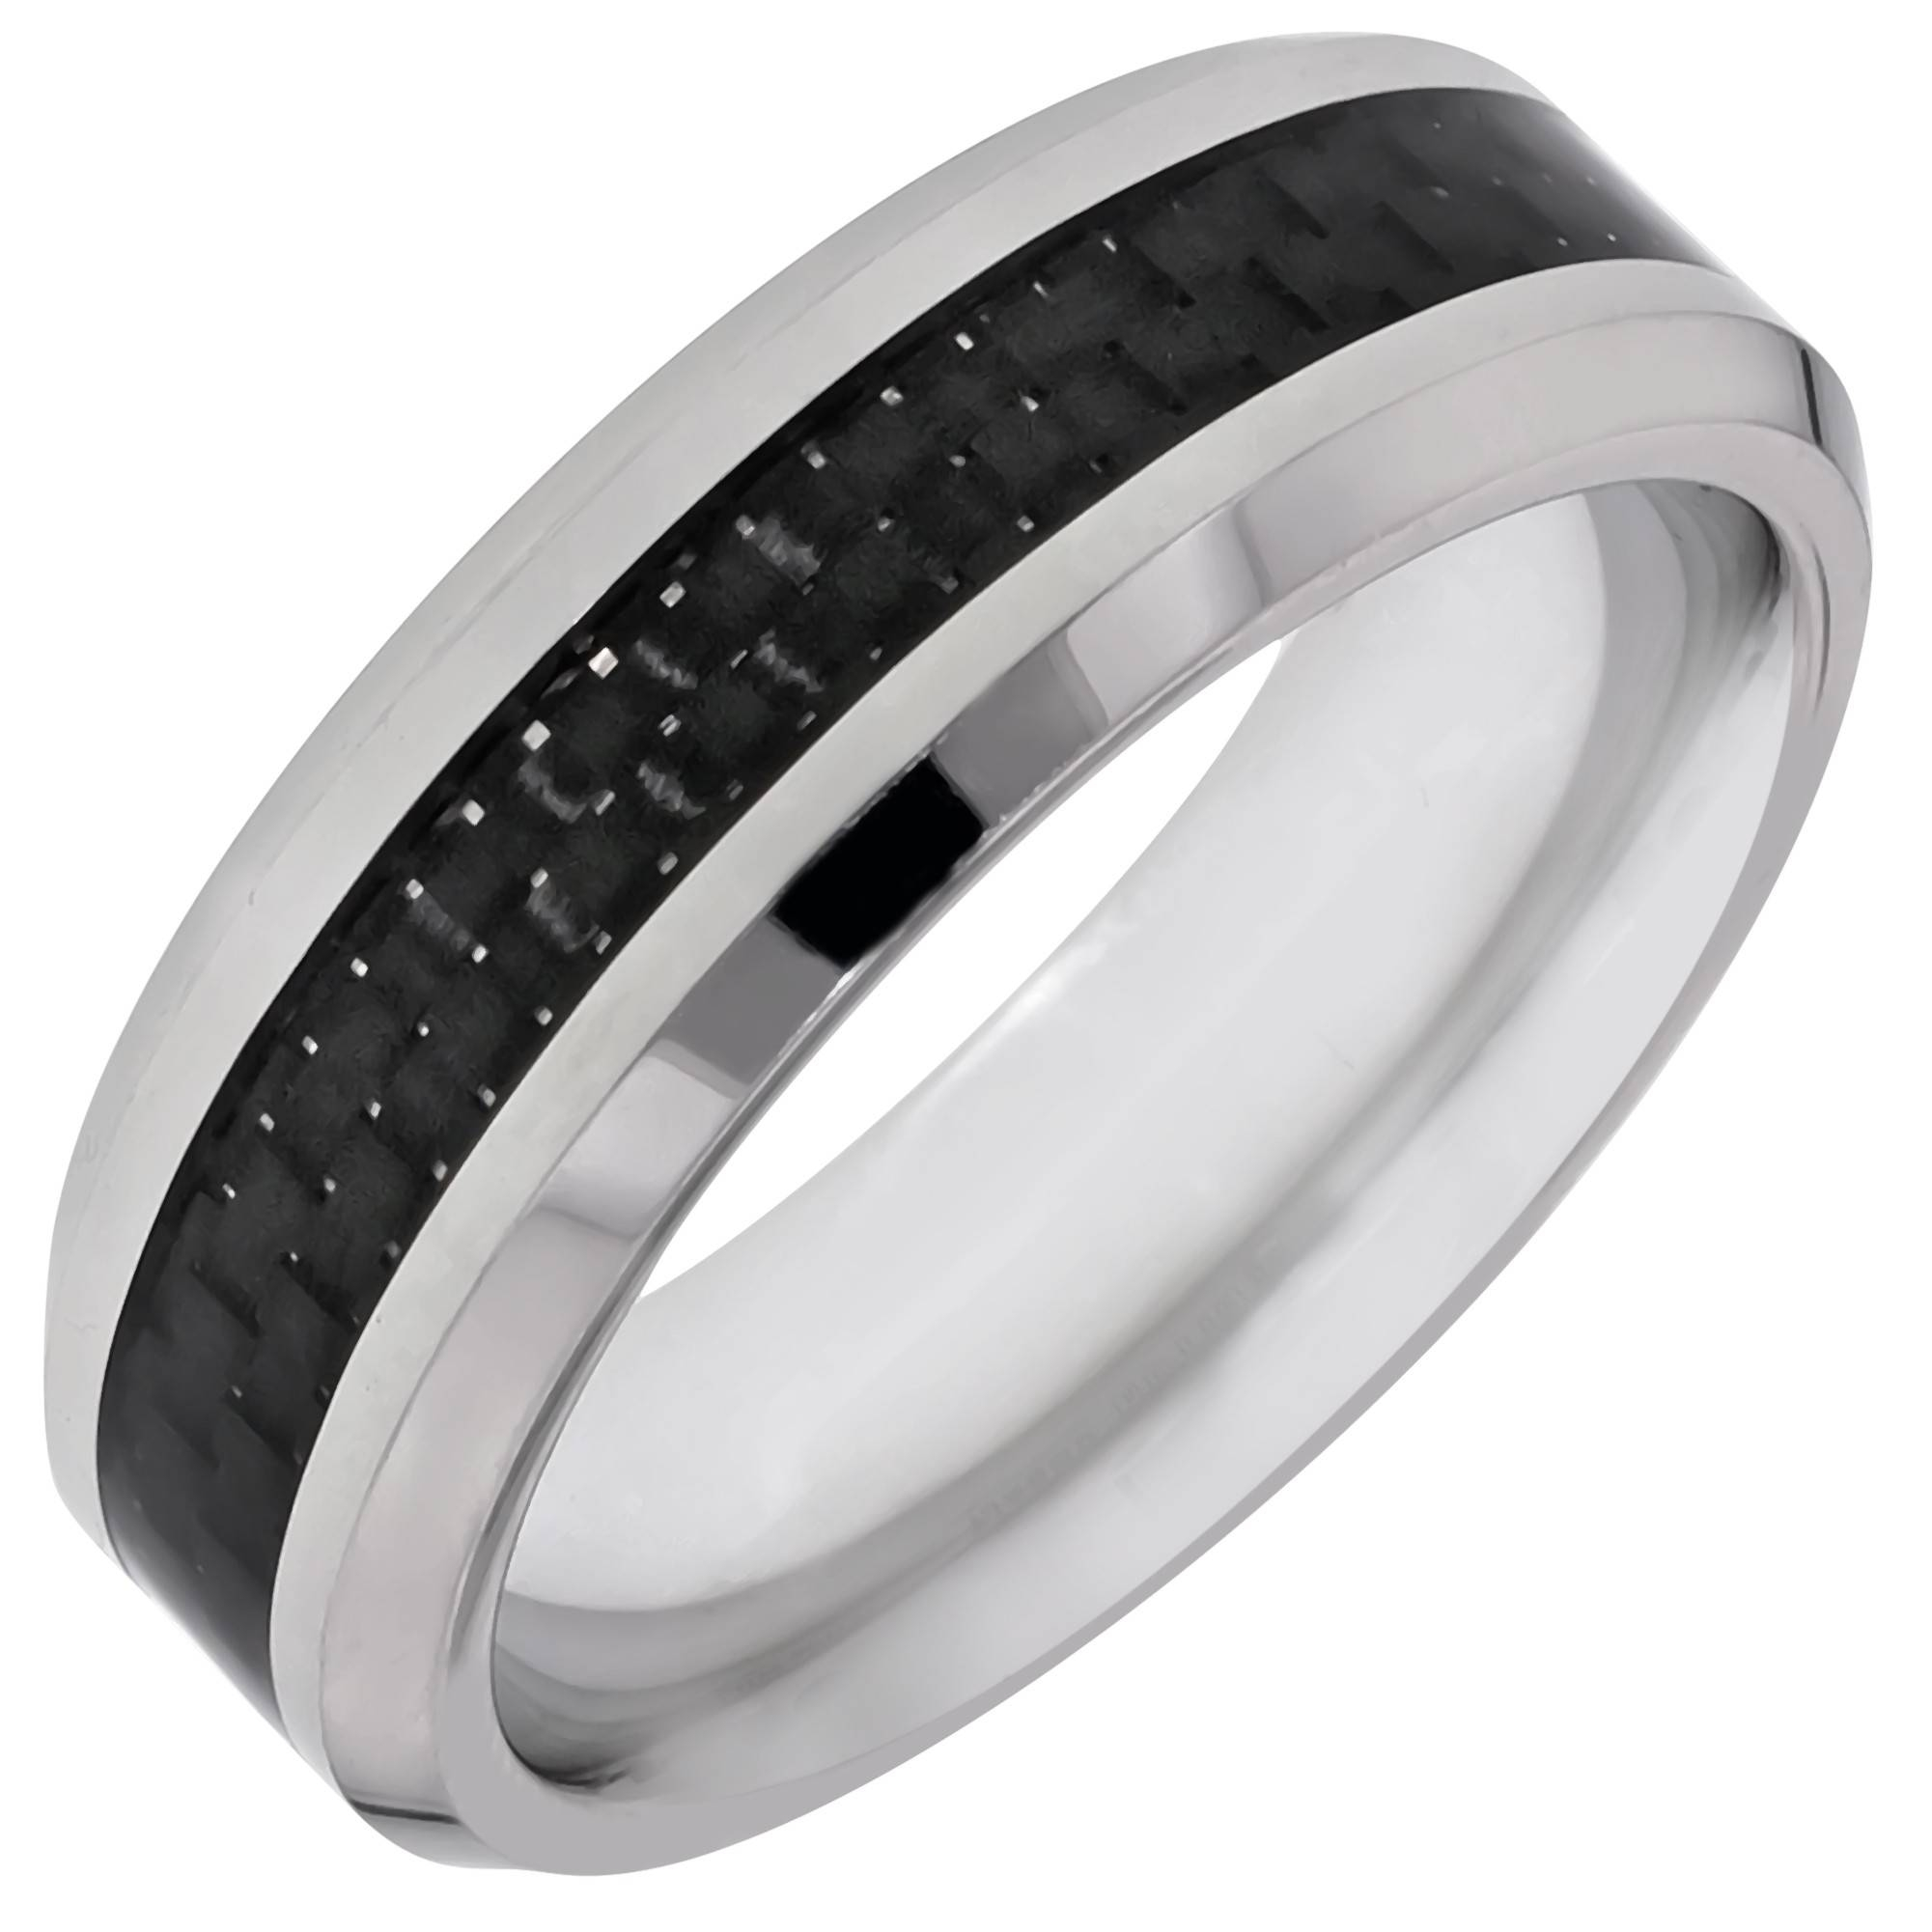 Mens Cobalt Chrome And Carbon Fiber Comfort Fit Wedding Band (7Mm) Pertaining To Carbon Wedding Bands (Gallery 4 of 15)